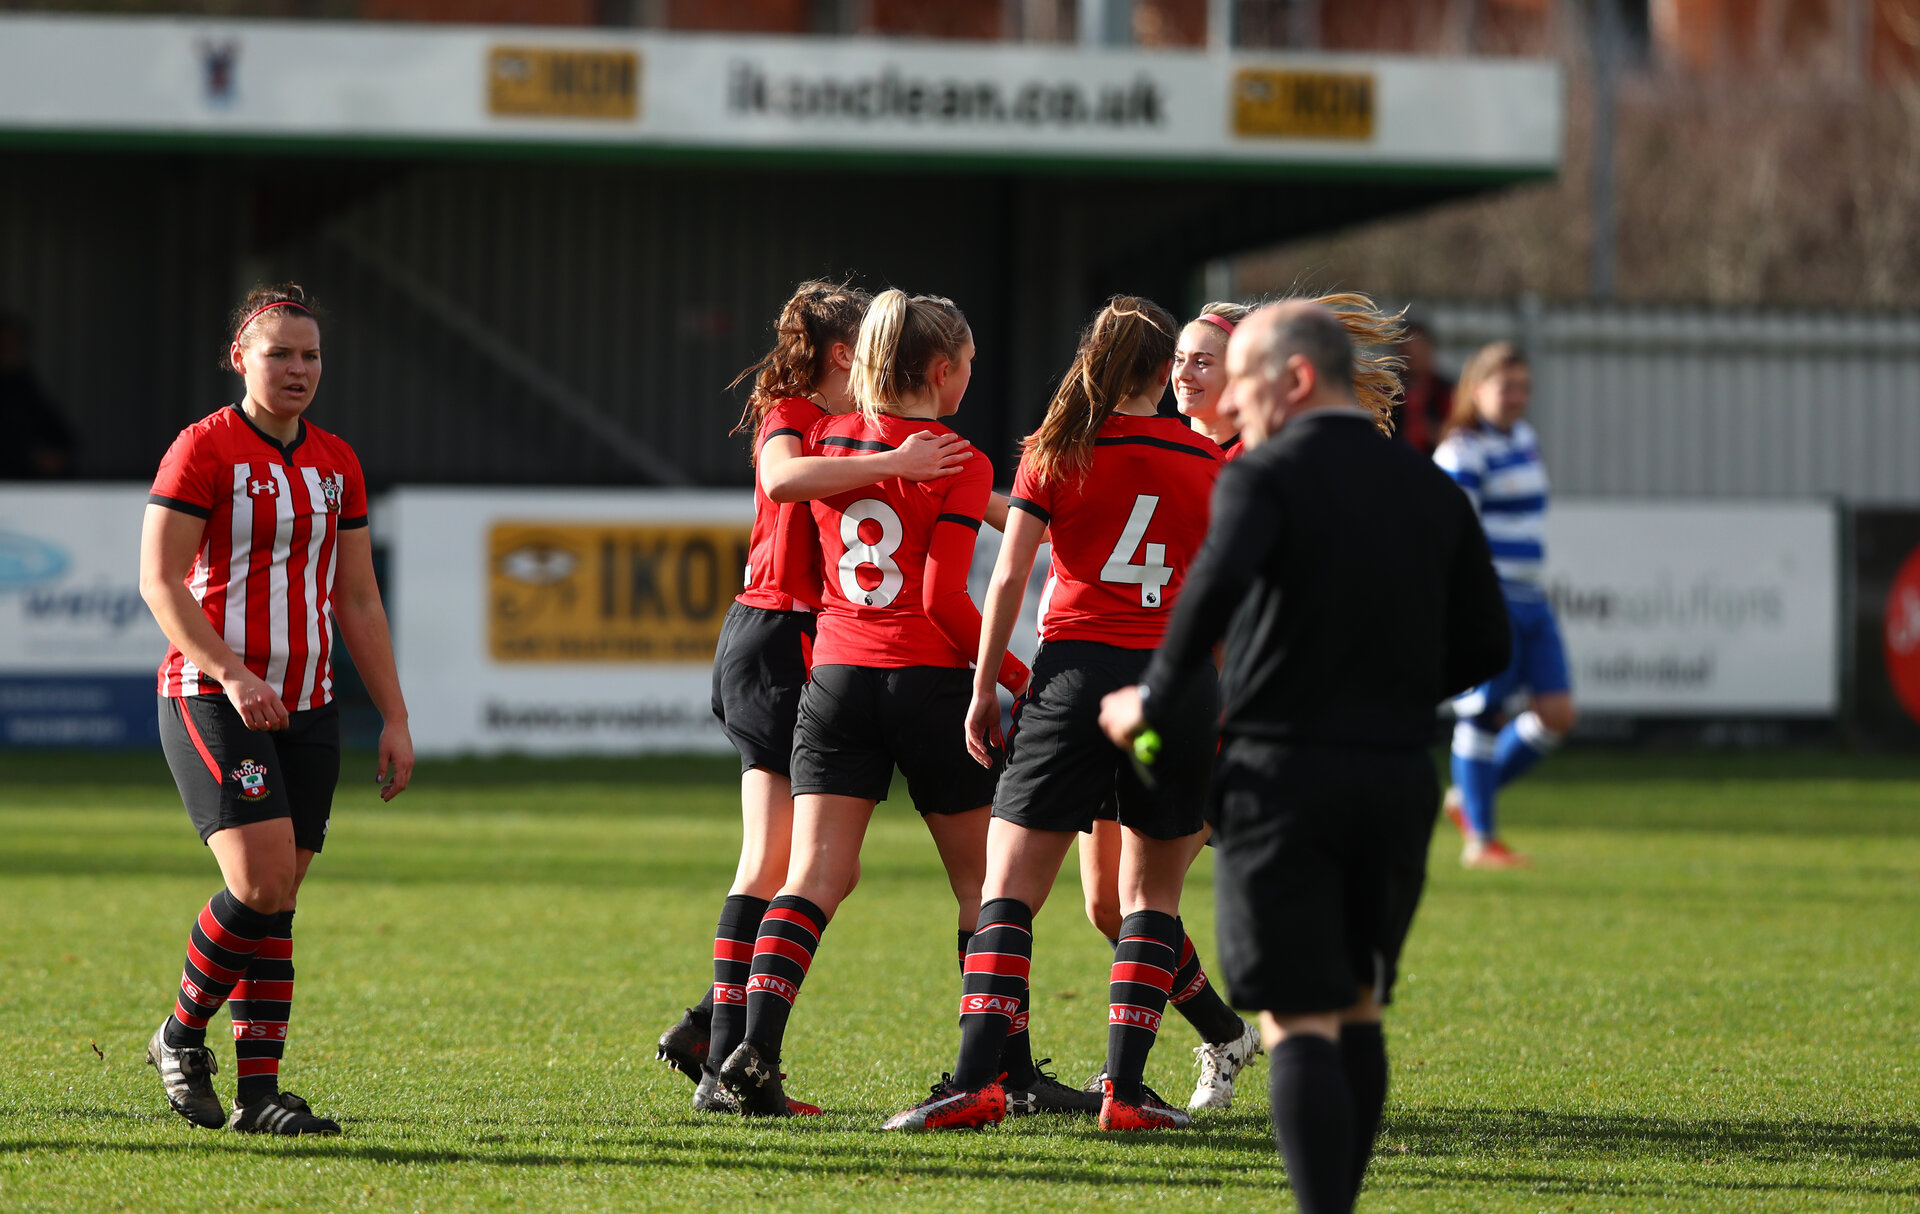 Southampton celebrate scoring their first goal during the Southern Region Women's Premier League match between Southampton and Oxford City, The Westwood Stadium, AFC Totton, Totton, Southampton, 10th February 2019